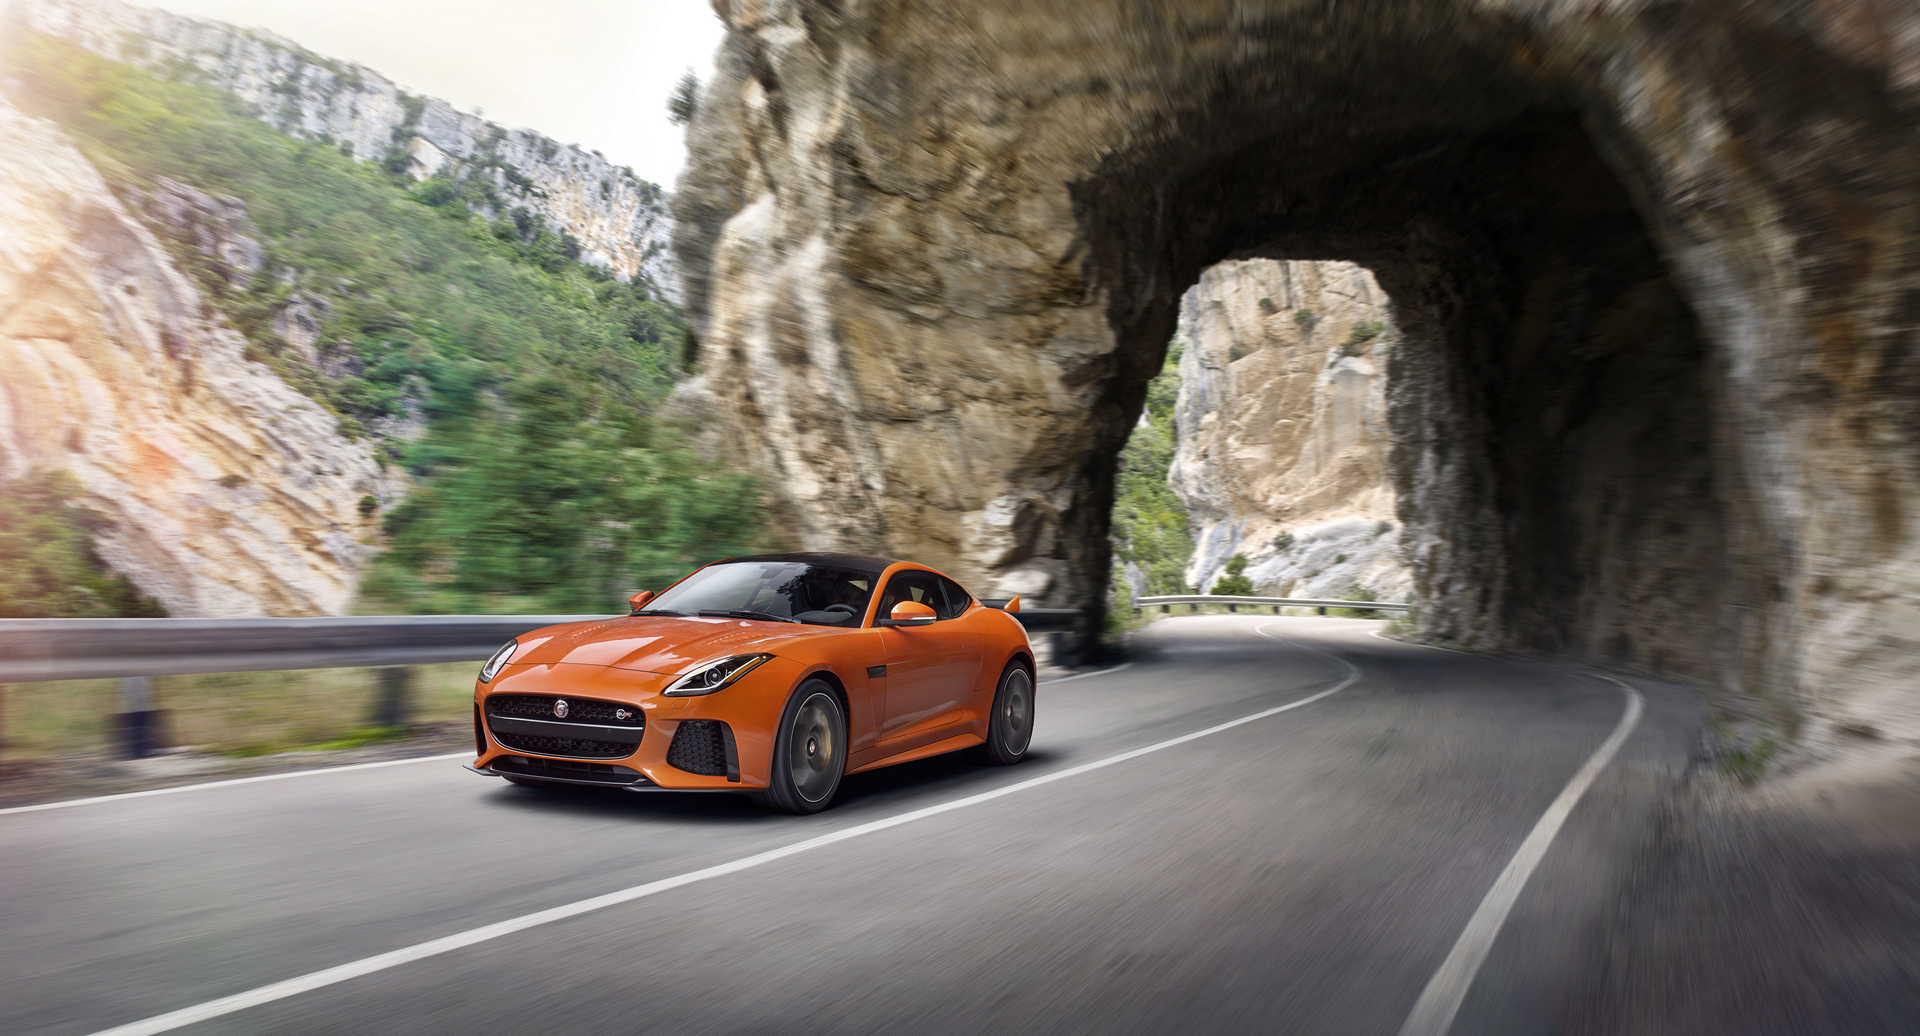 Jaguar F-TYPE SVR © Tata Group